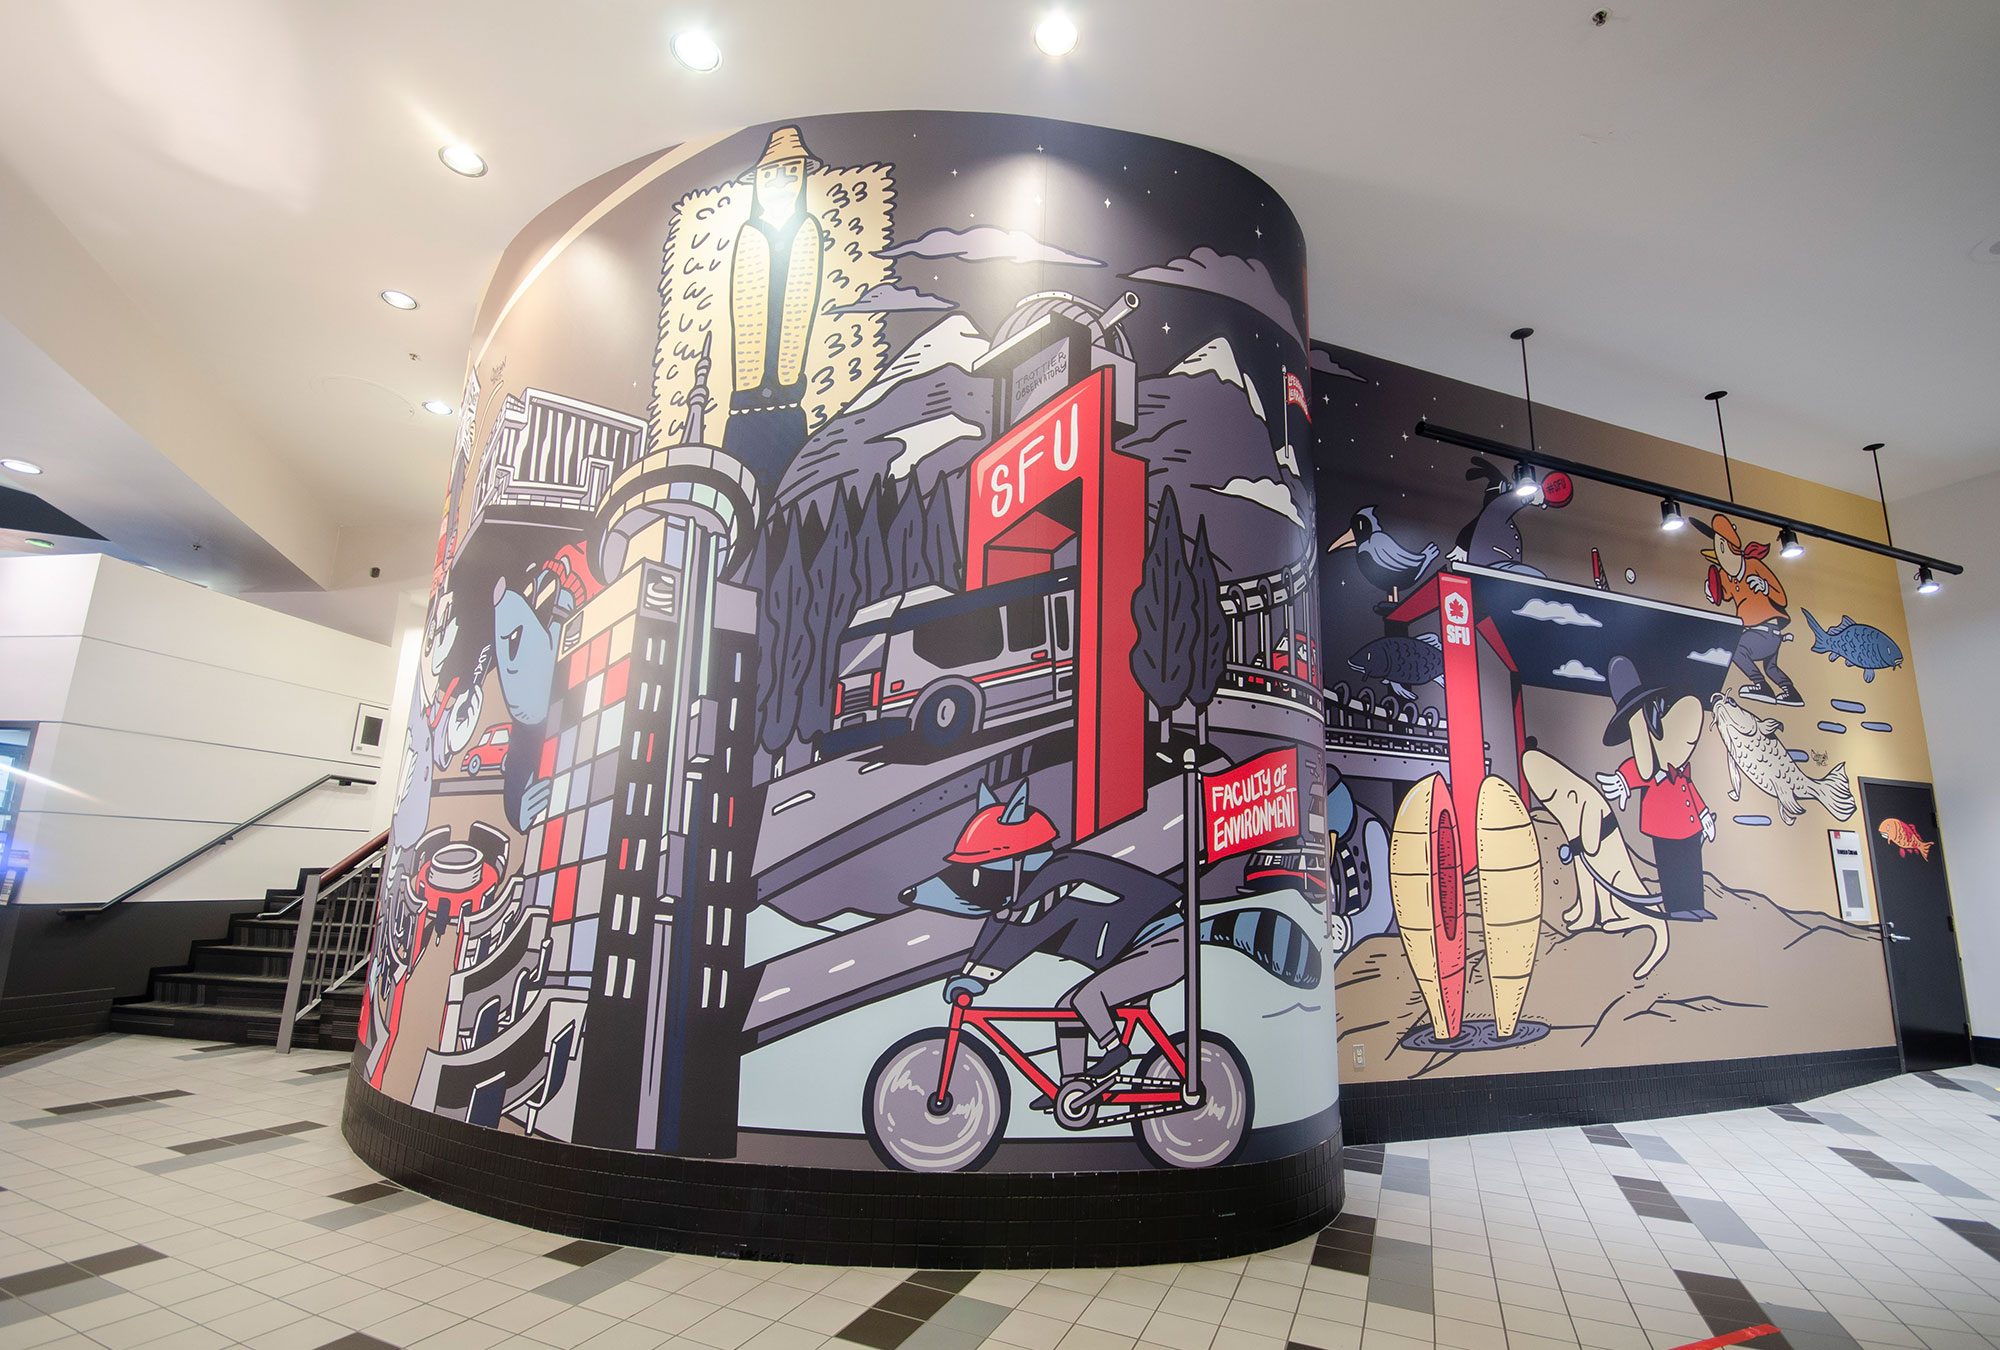 Curved wall with colourful graphics for SFU